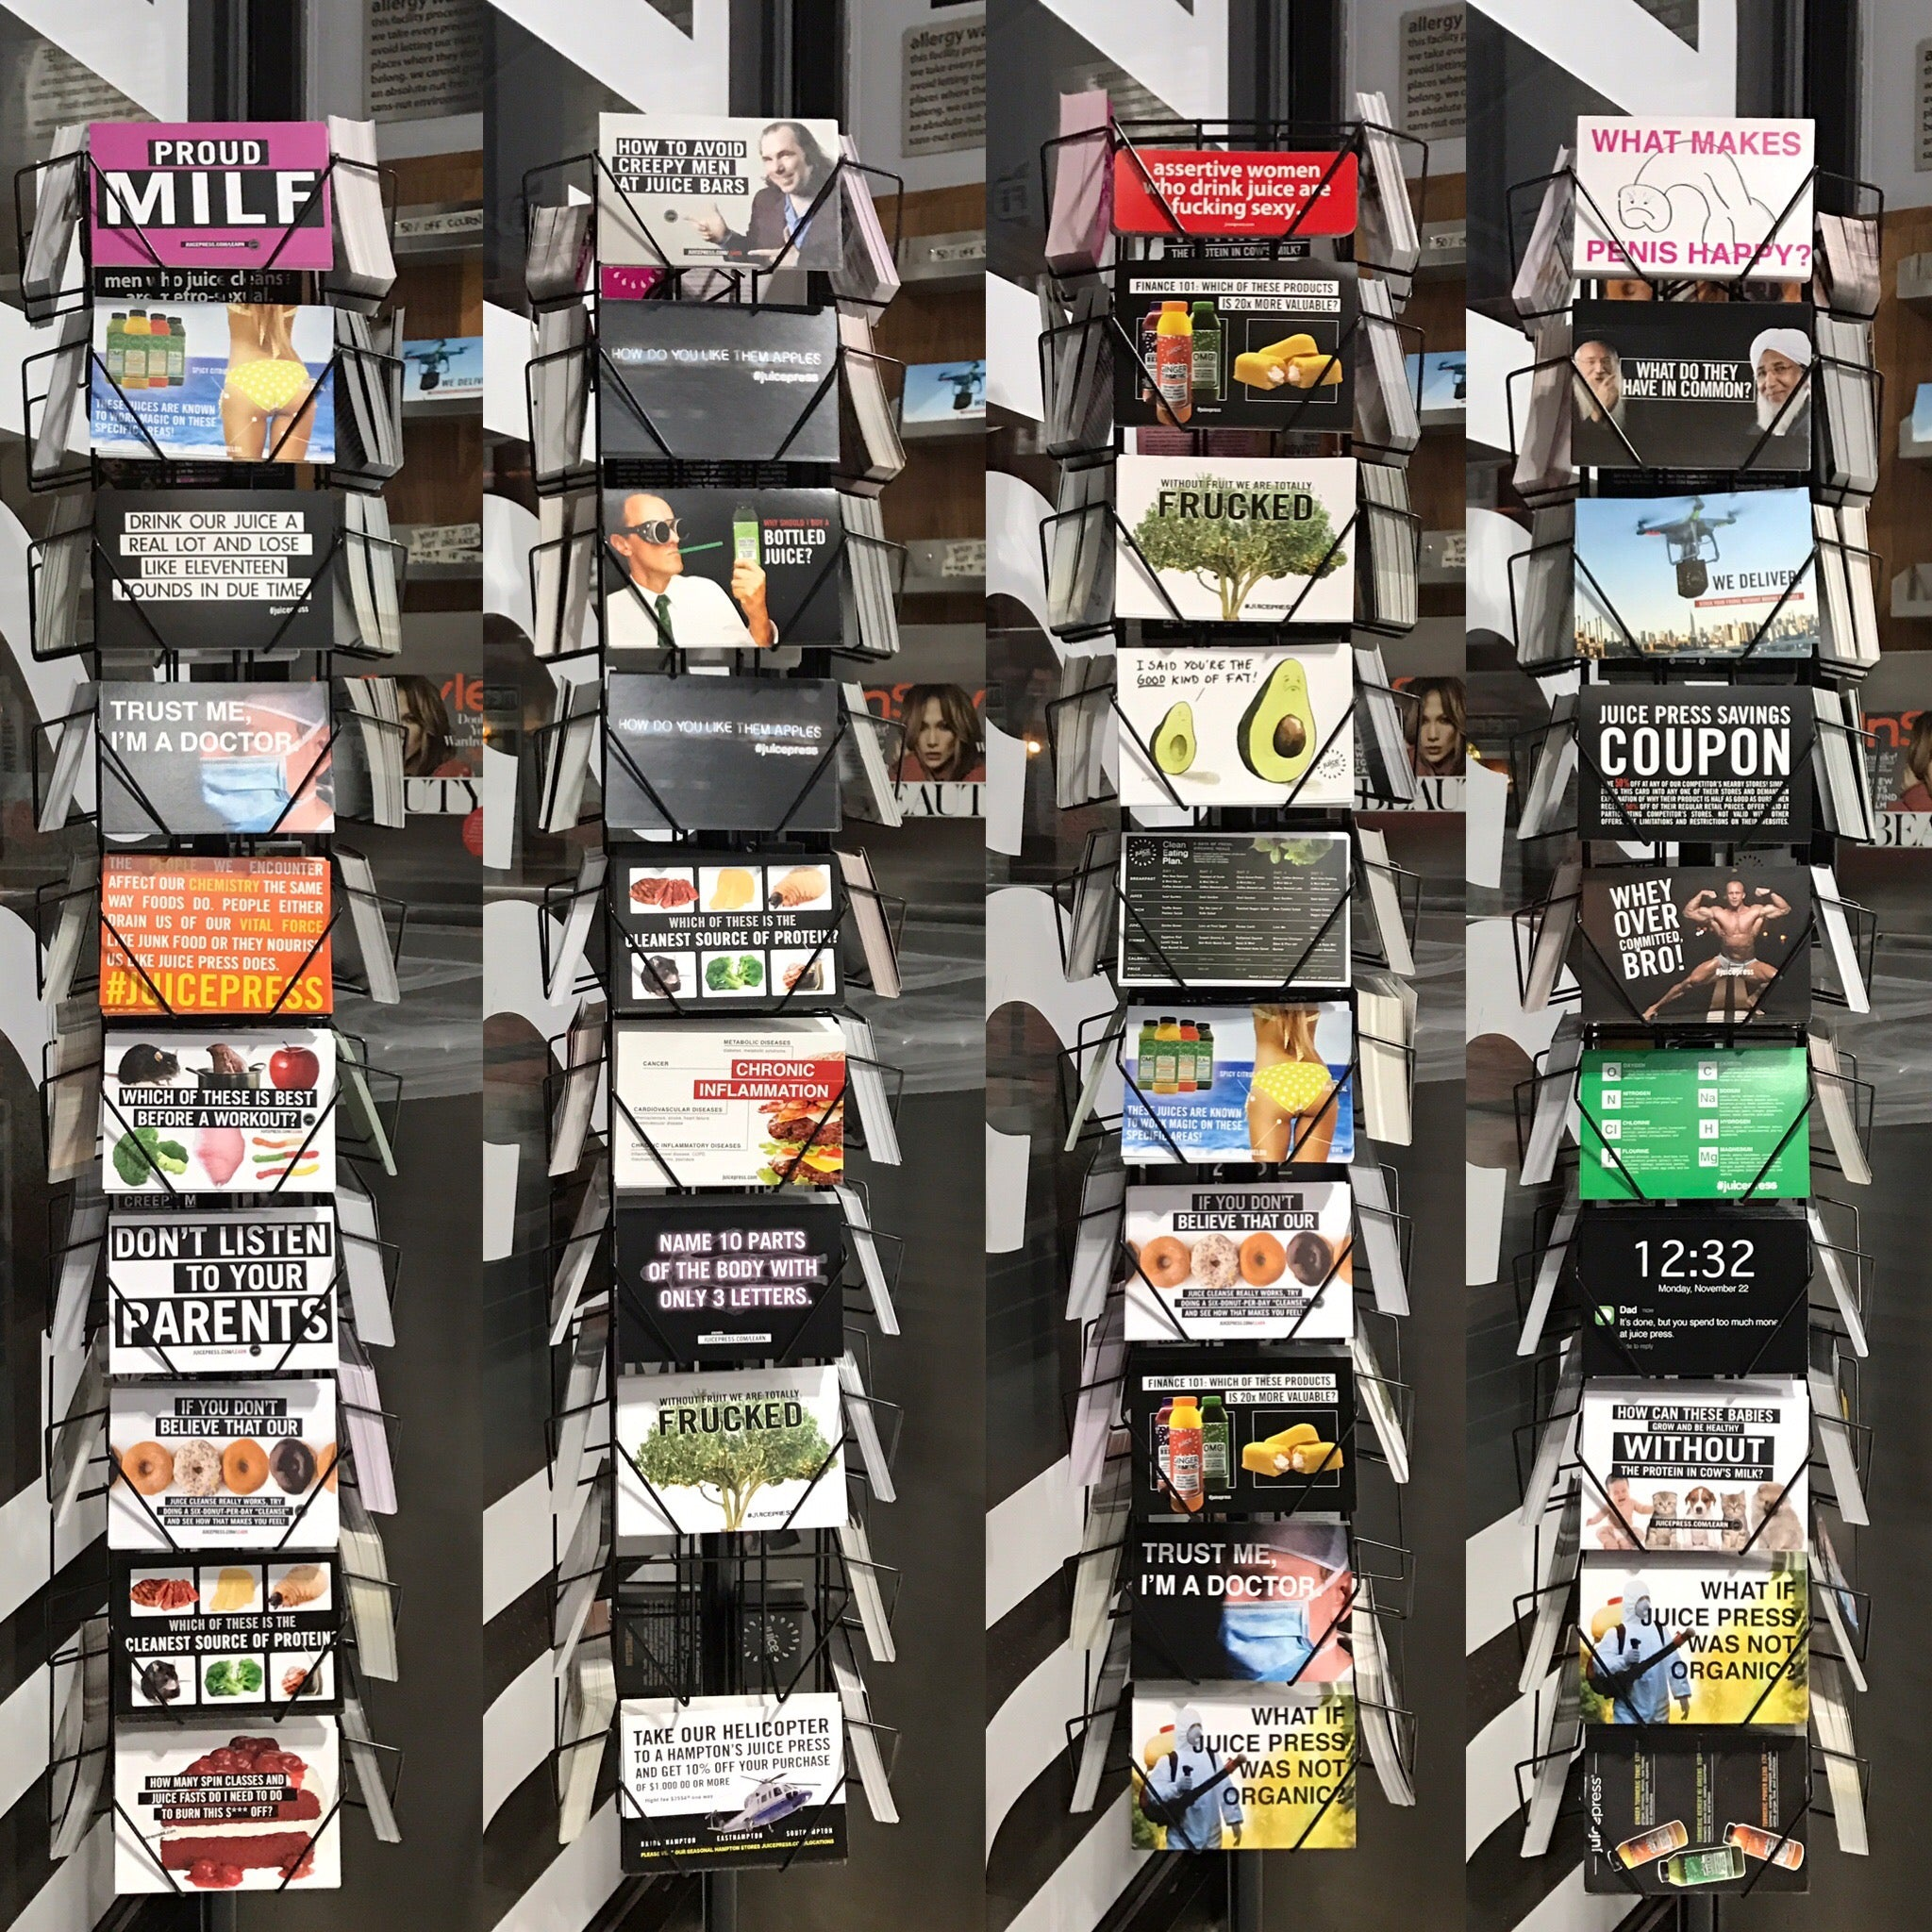 post card racks at Juice Press. the post cards were the best.